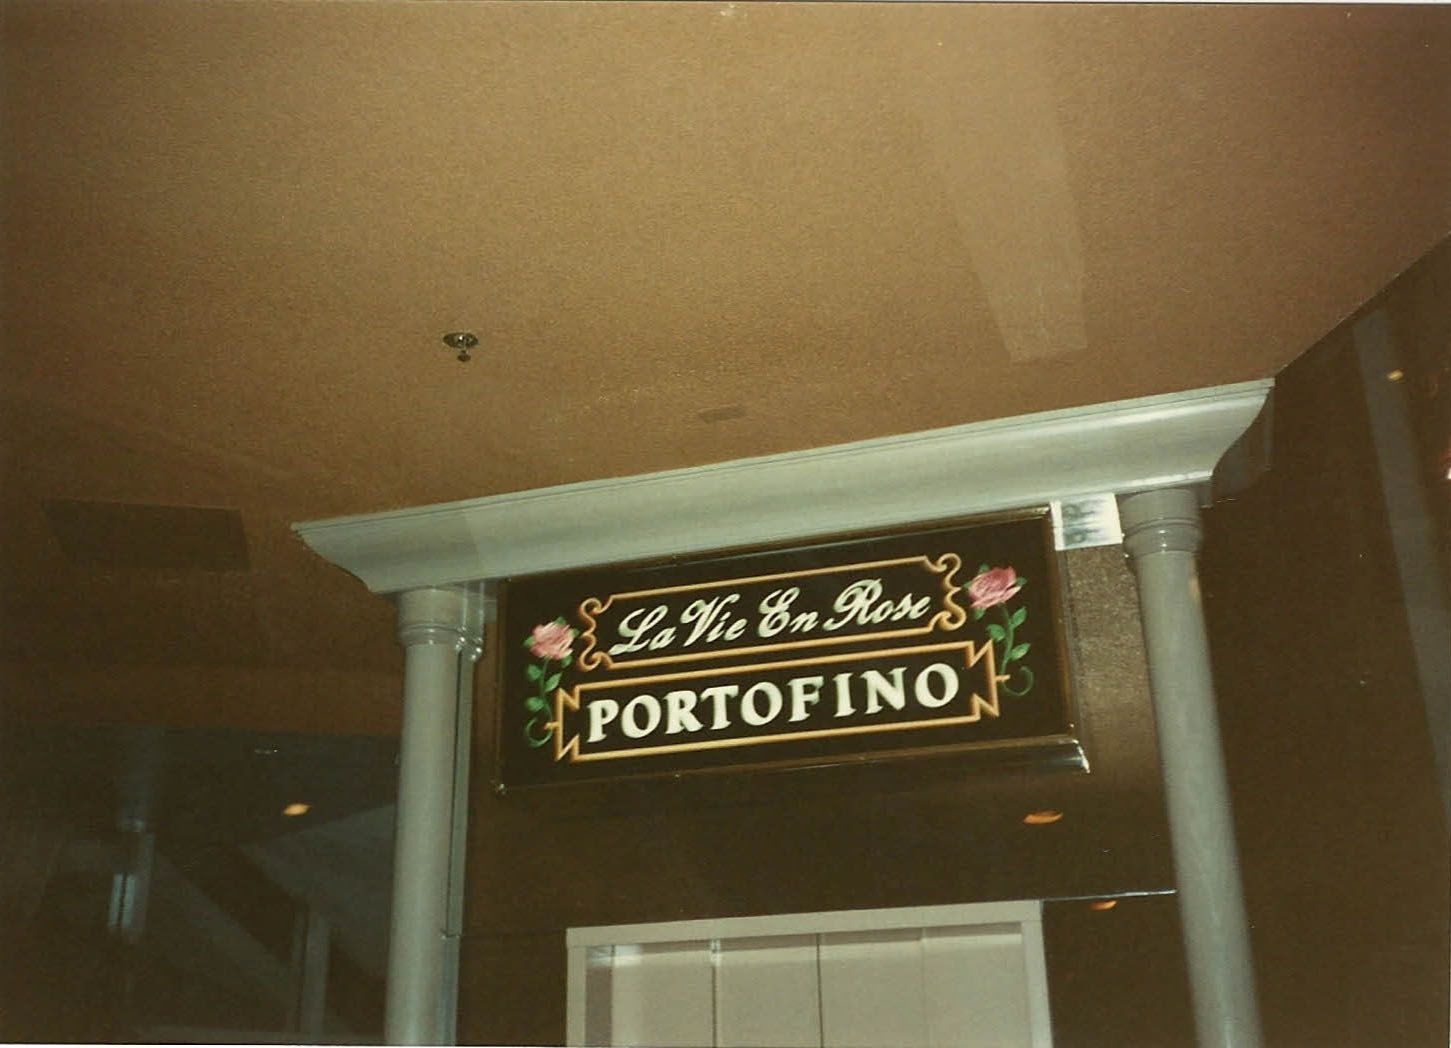 Elevators to La Vie En Rose & Portofino restaurants - just inside from the pool - August 1990